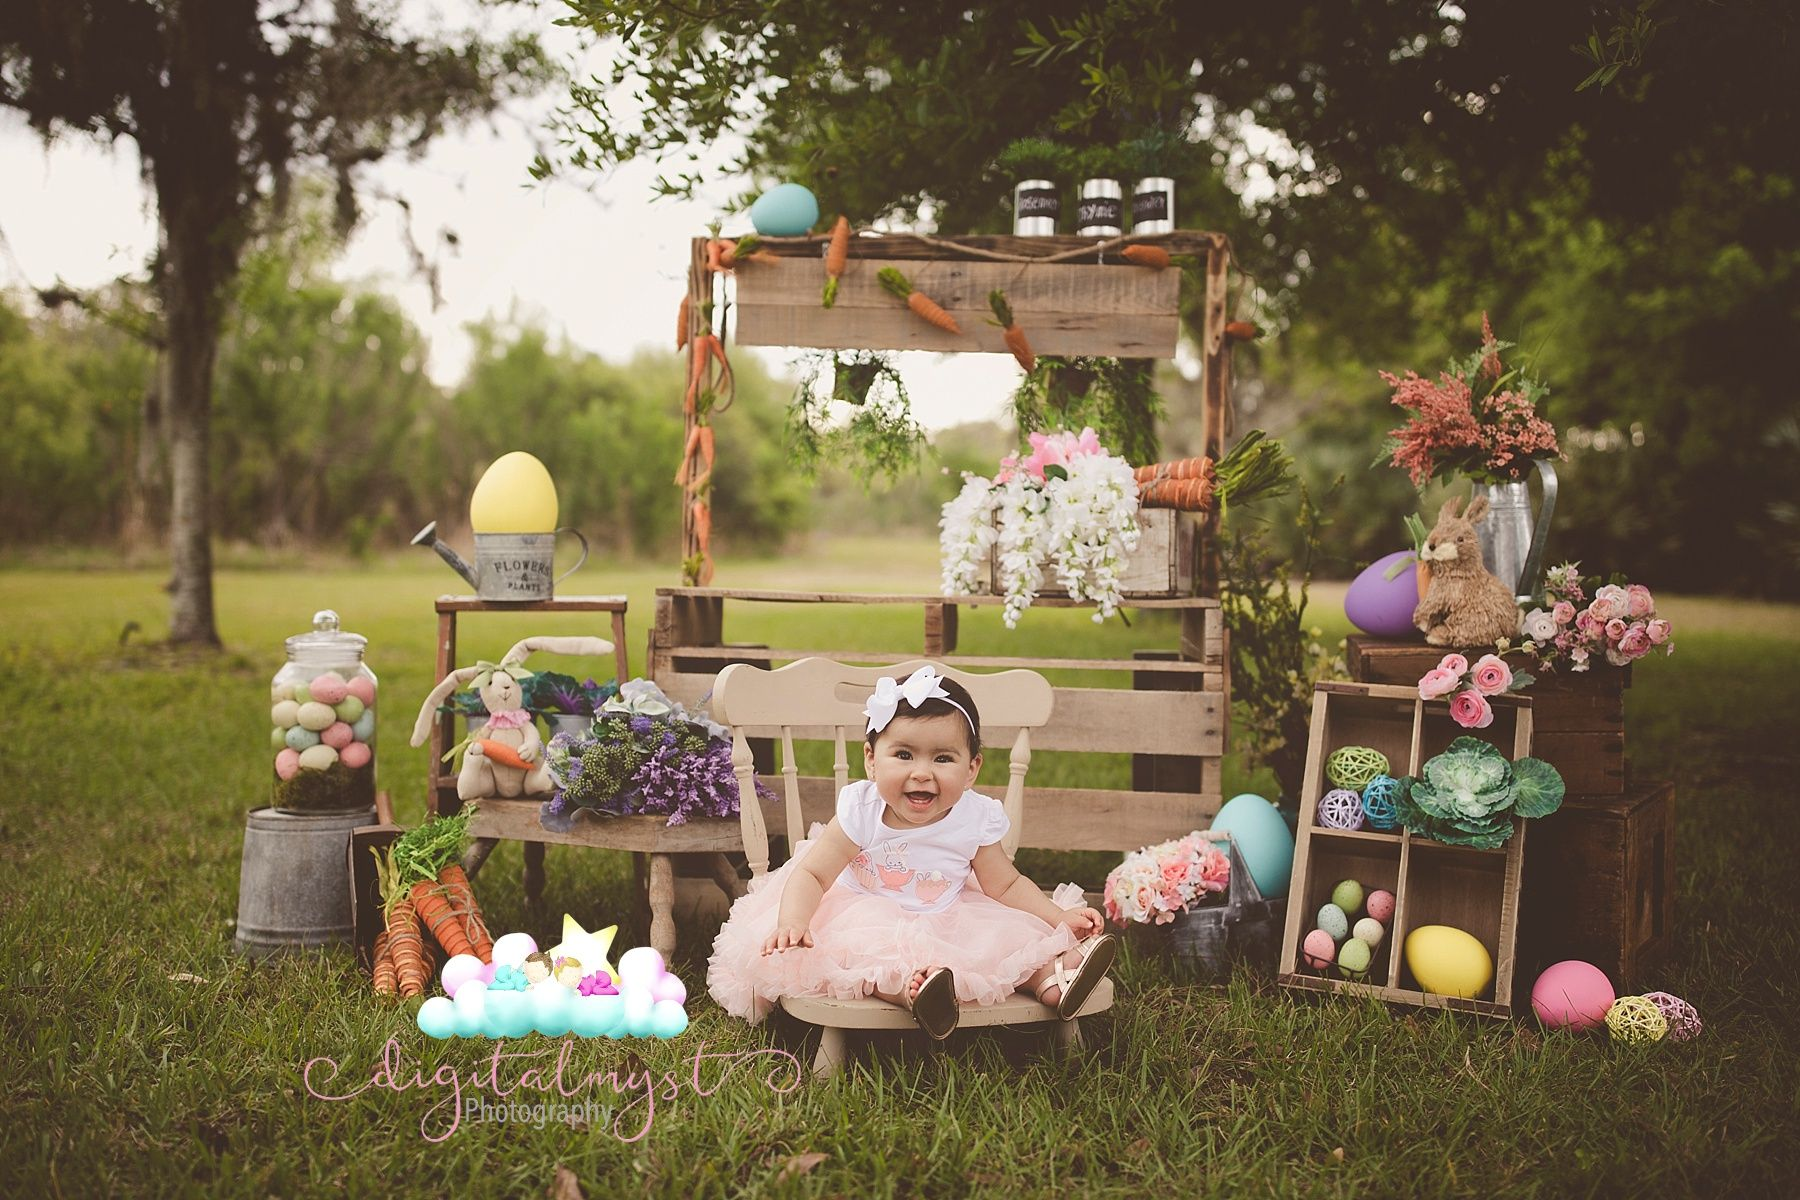 Land O Lakes Mini Session Photographer Does Pictures Of Baby Camila Baby Easter Photography Baby Pictures